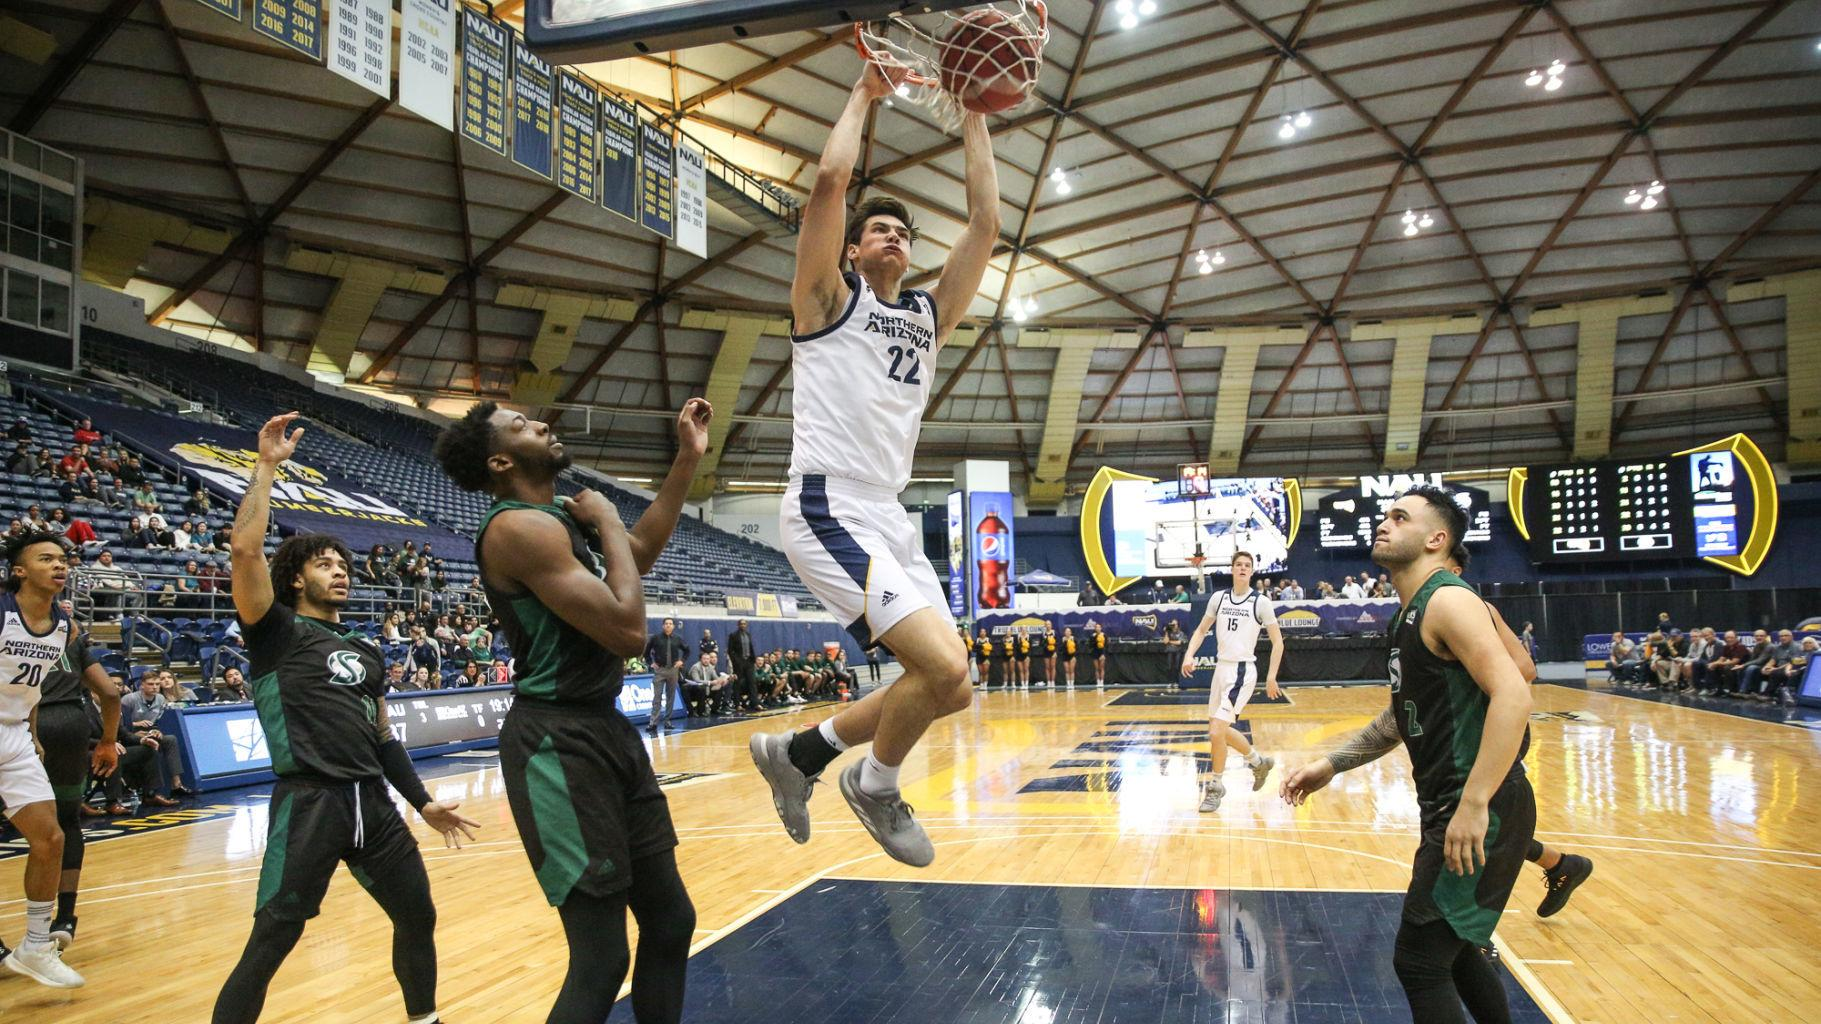 NAU Roundup: Men's basketball uses strong shooting to beat Sacramento State